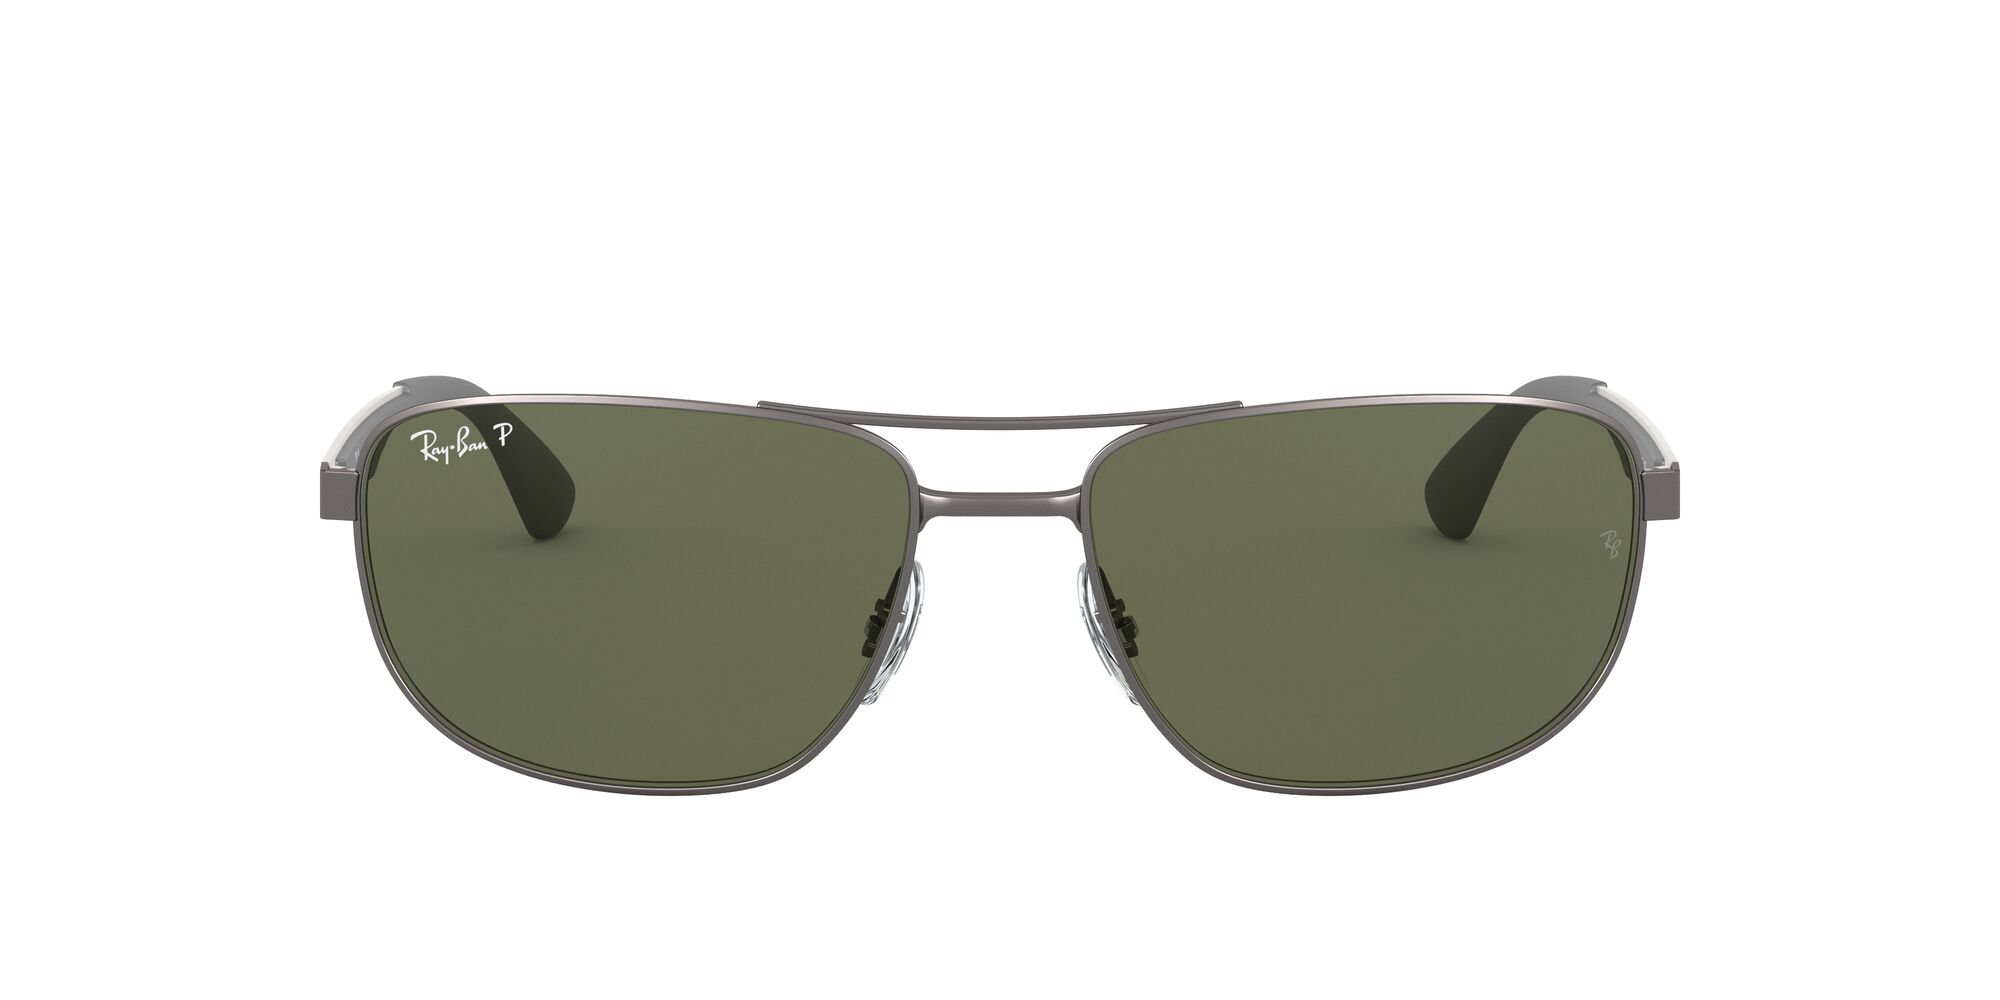 Front Ray-Ban Ray-Ban 0RB3528 029/9A 61/17 Grijs/Groen